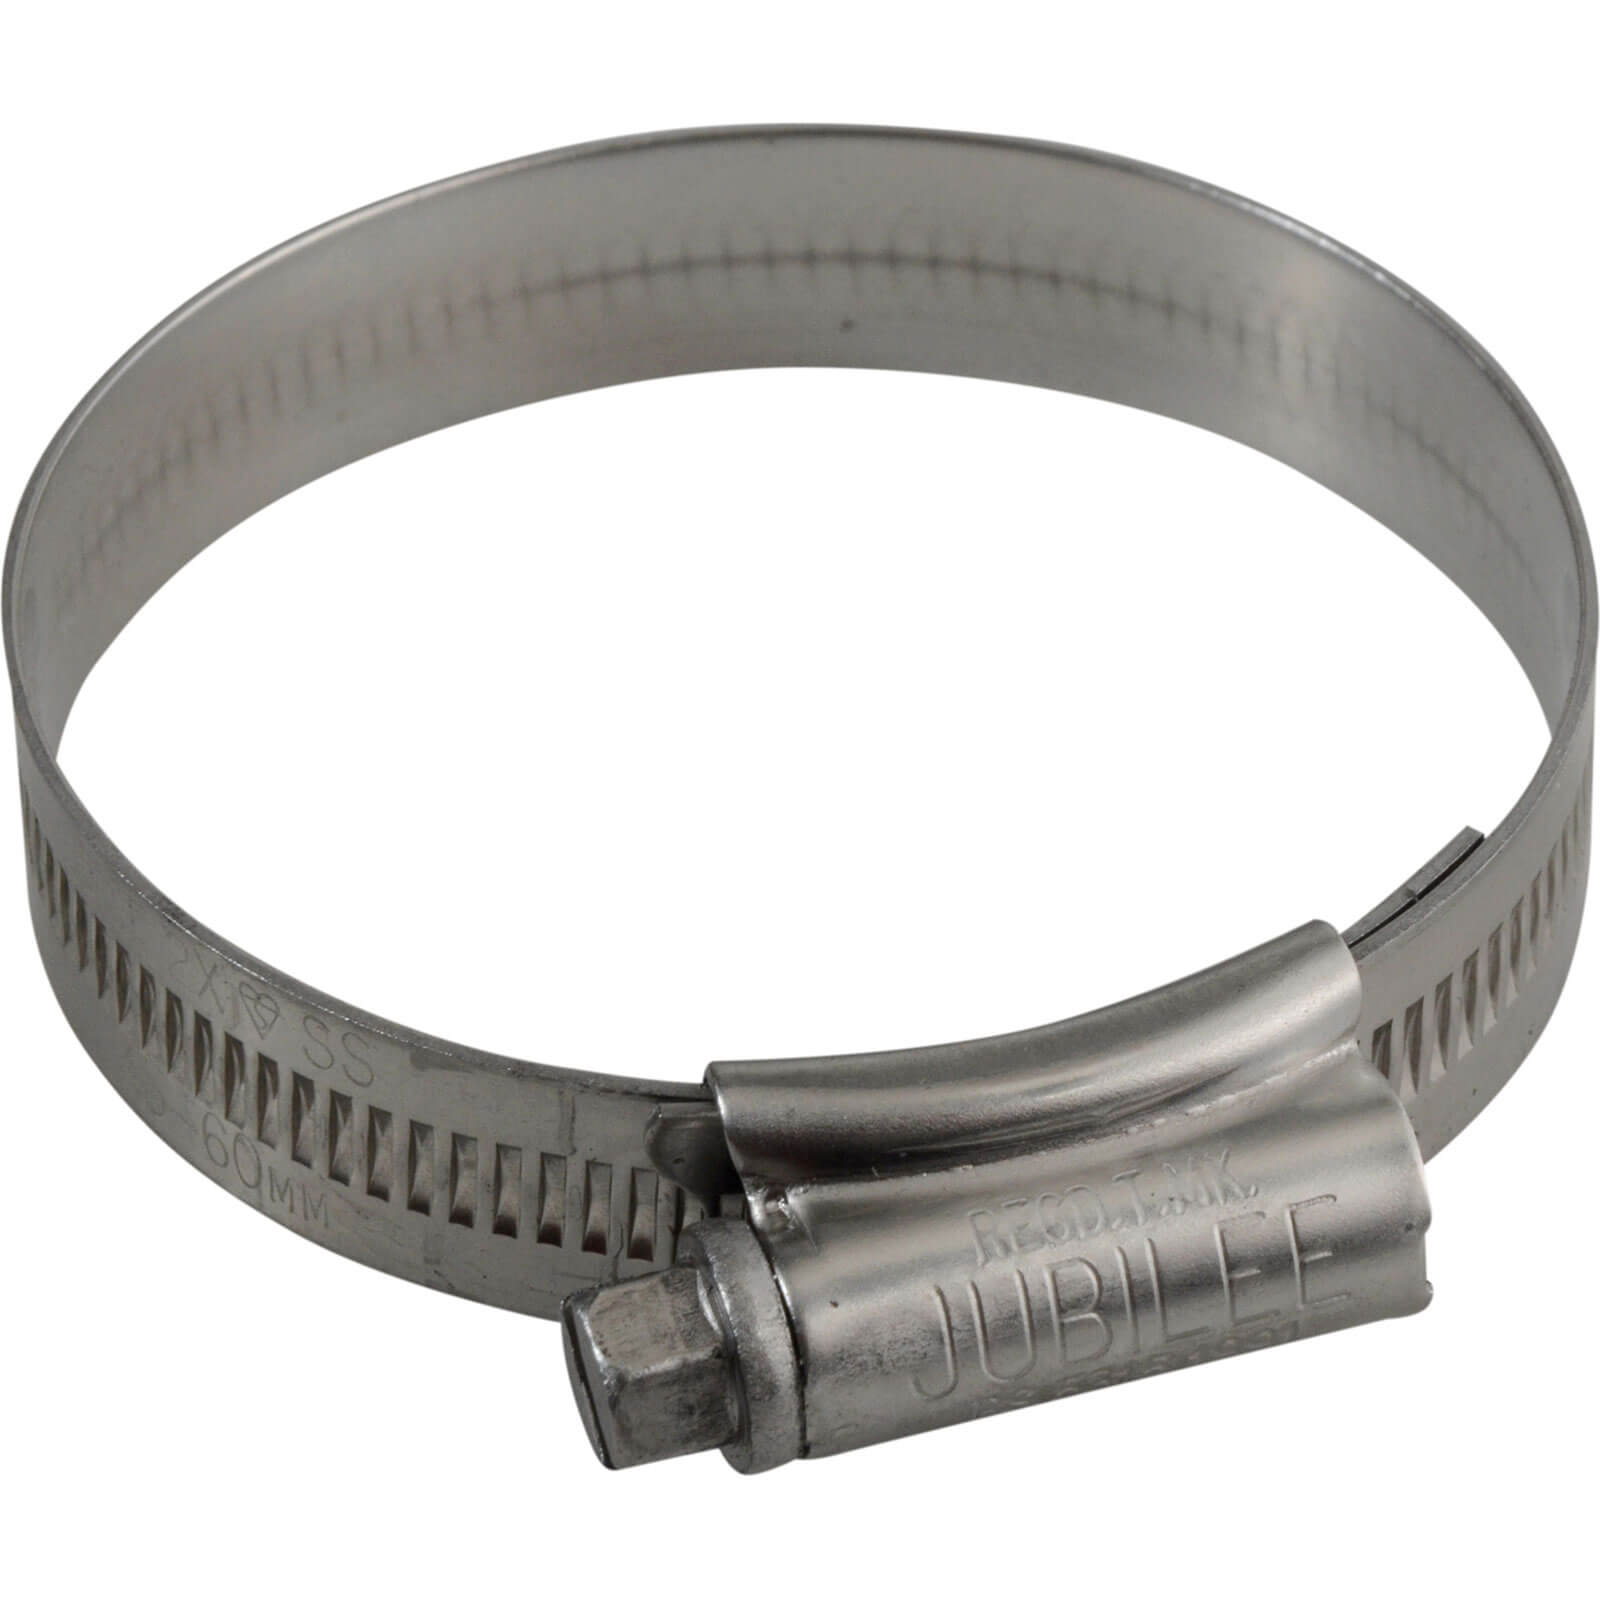 Image of Jubilee Stainless Steel Hose Clip 45mm - 60mm Pack of 1